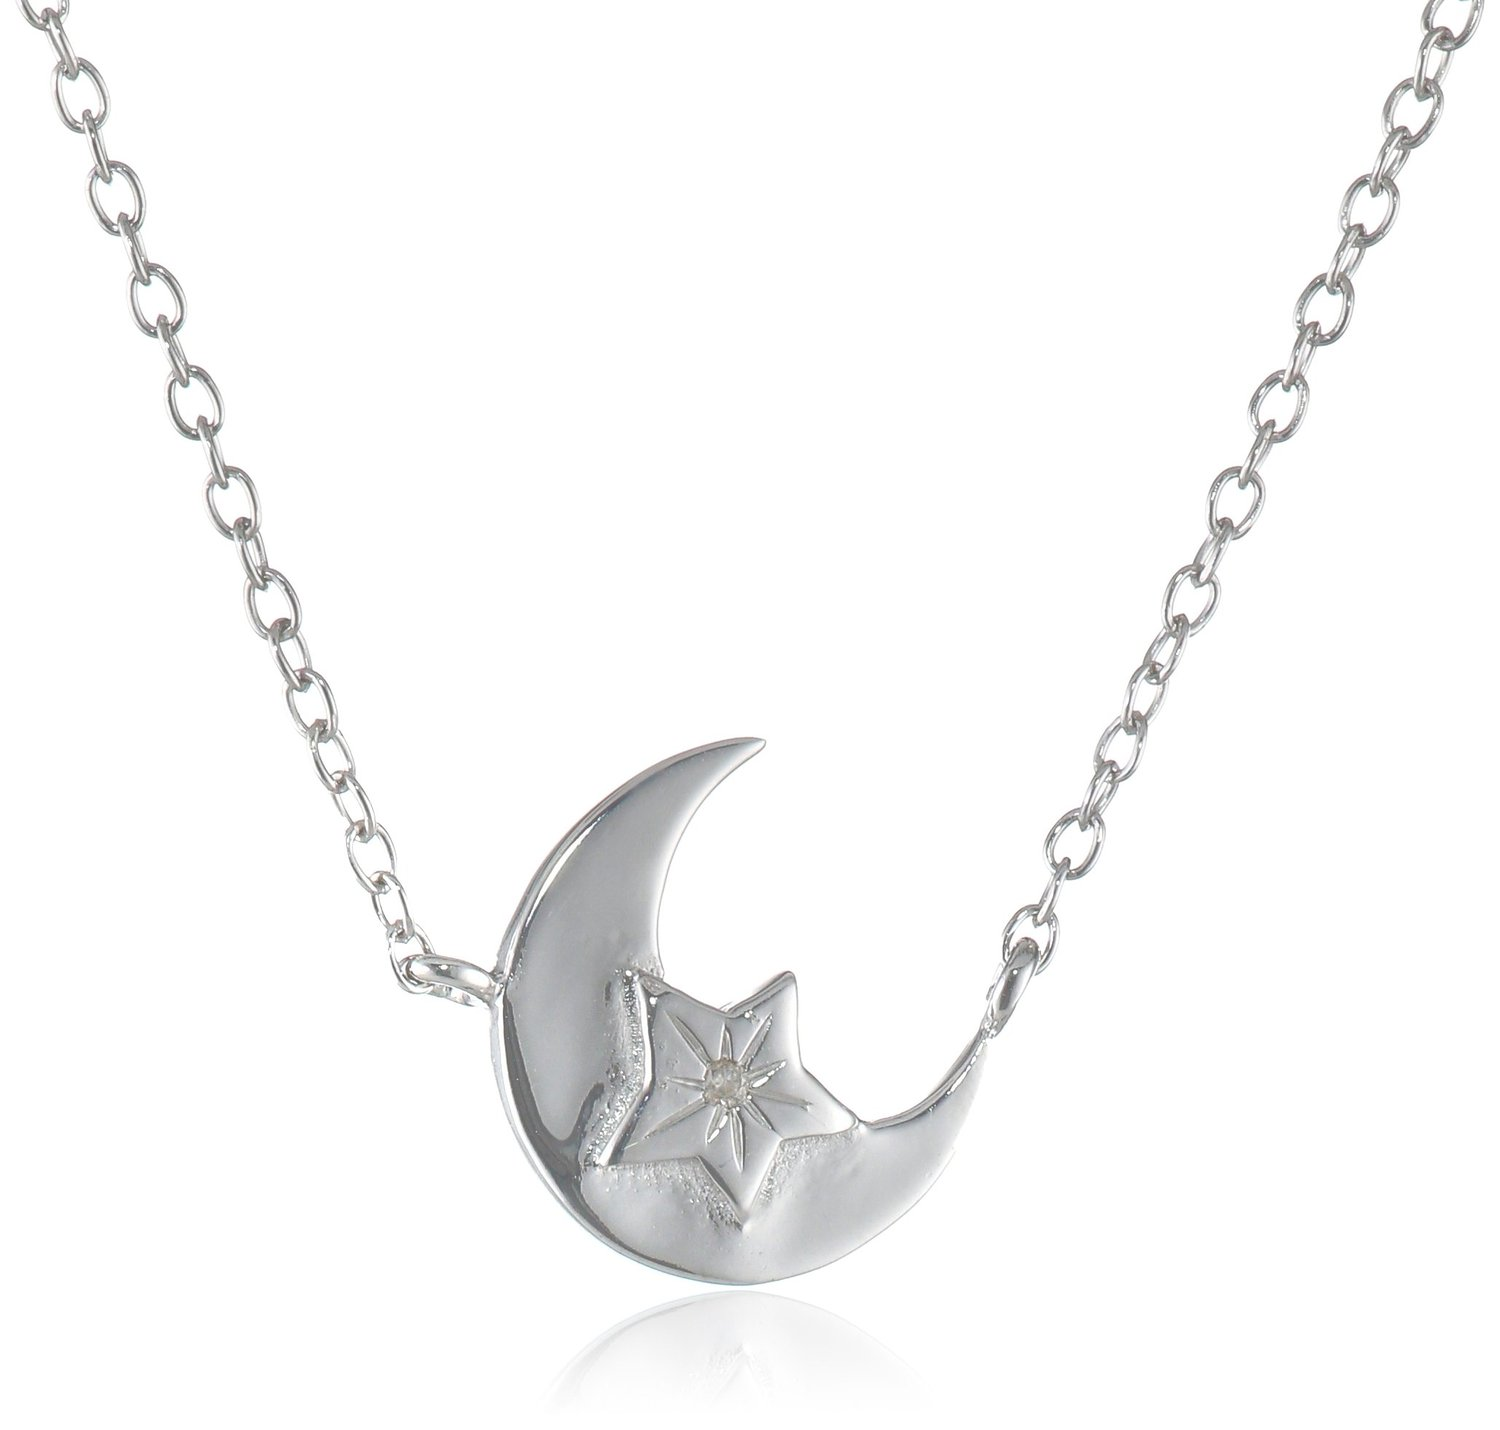 """Amazon.com: sterling silver stationed moon and star diamond accent necklace, 16"""" 2"""" extender: jewelry"""